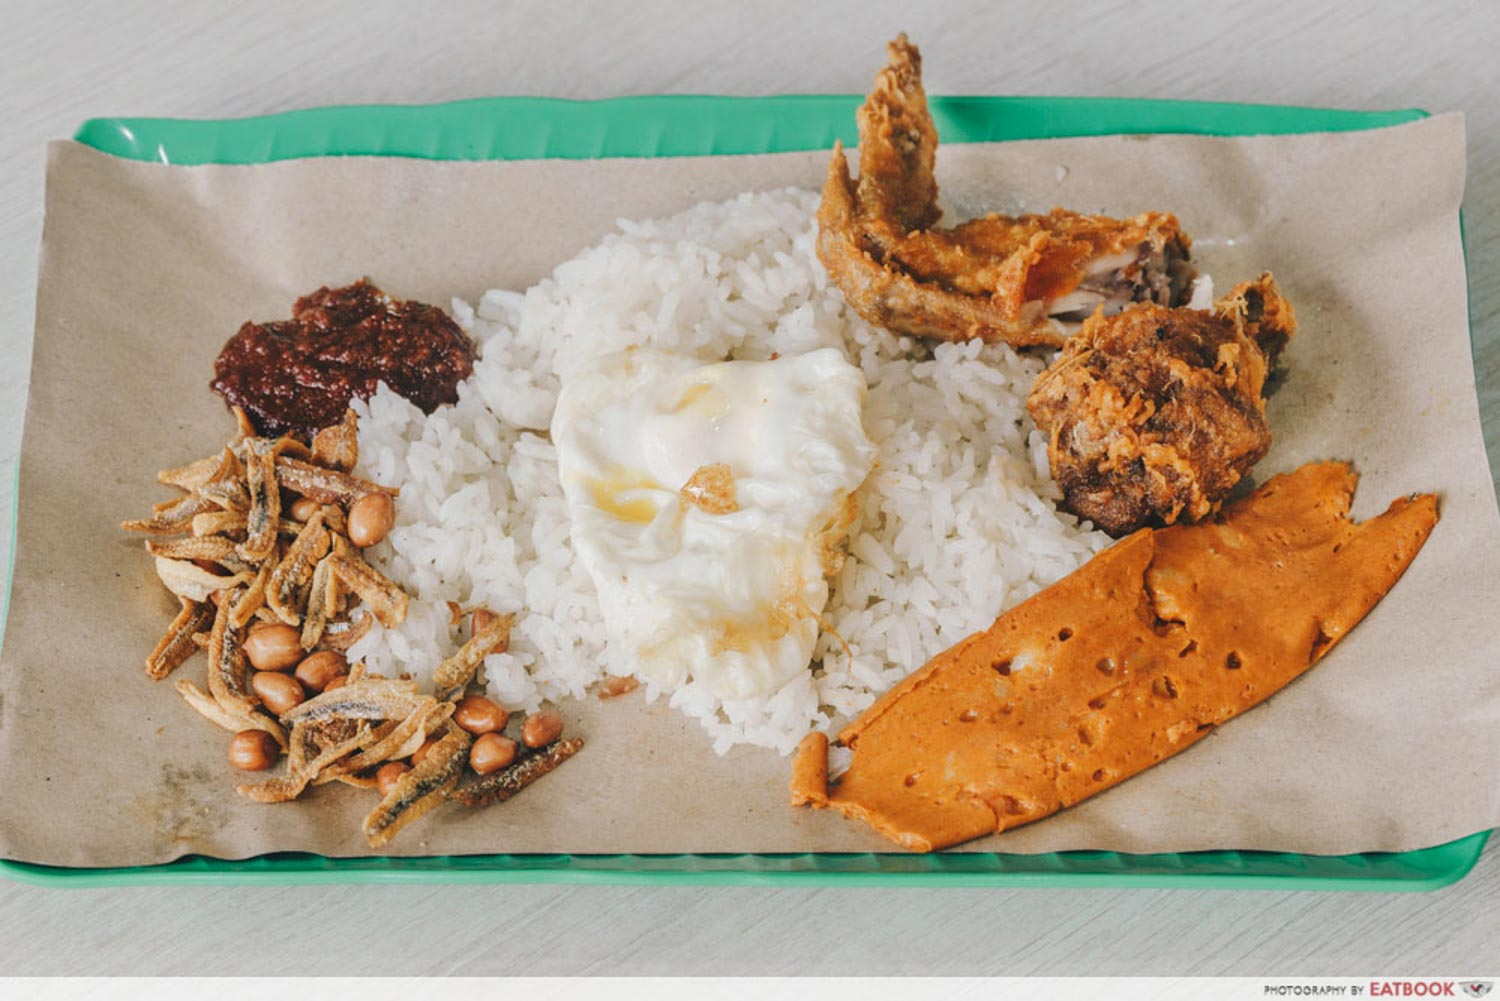 15 Nasi Lemak Stalls With Delivery During Circuit Breaker Eatbook Sg New Singapore Restaurant And Street Food Ideas Recommendations